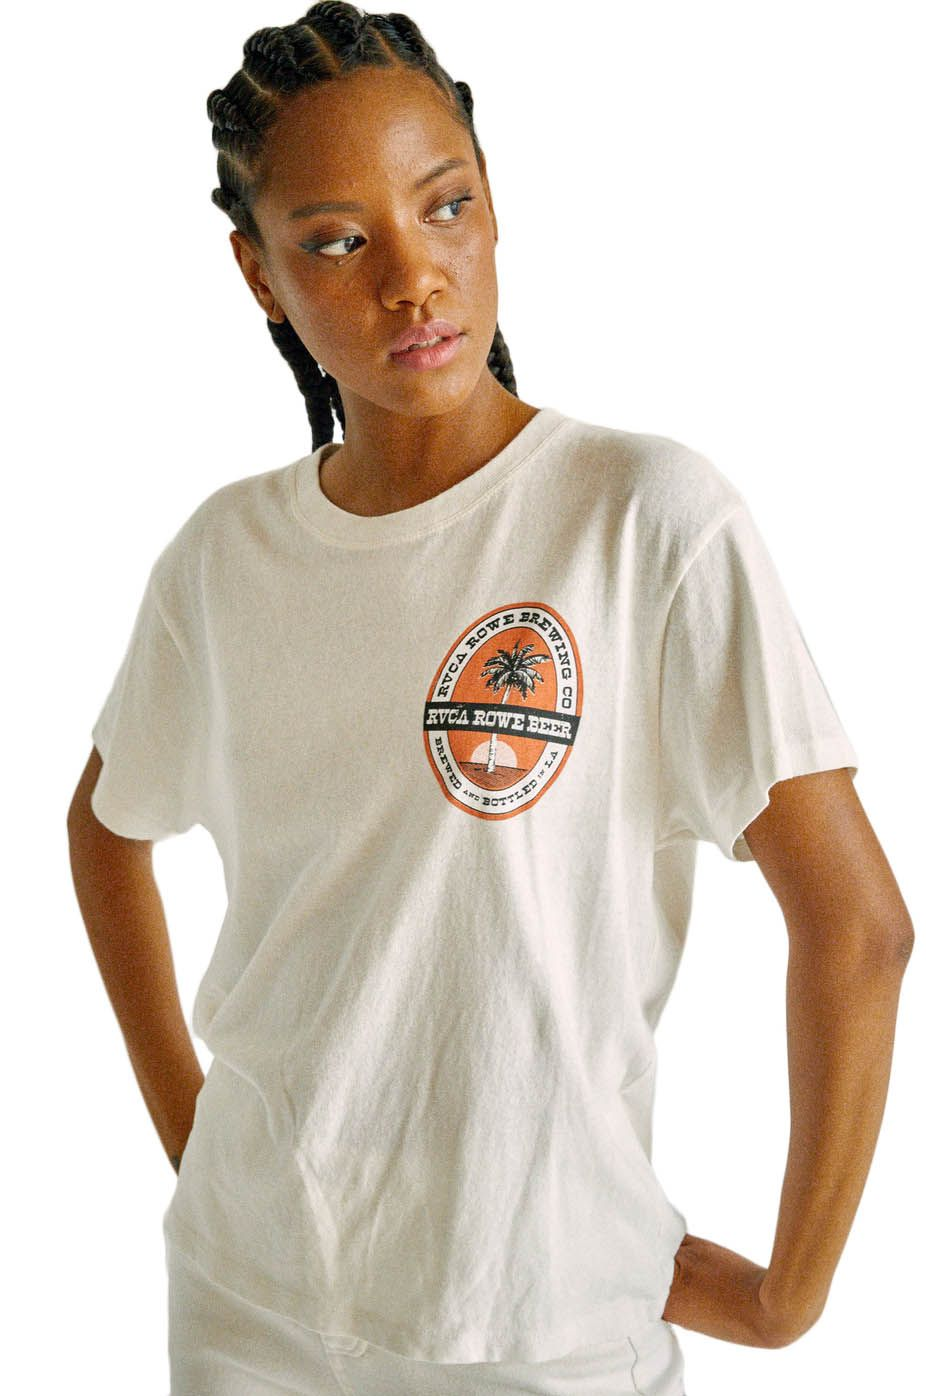 T-Shirt RVCA ROWE BREWING TEE CAMILLE ROWE Vintage White